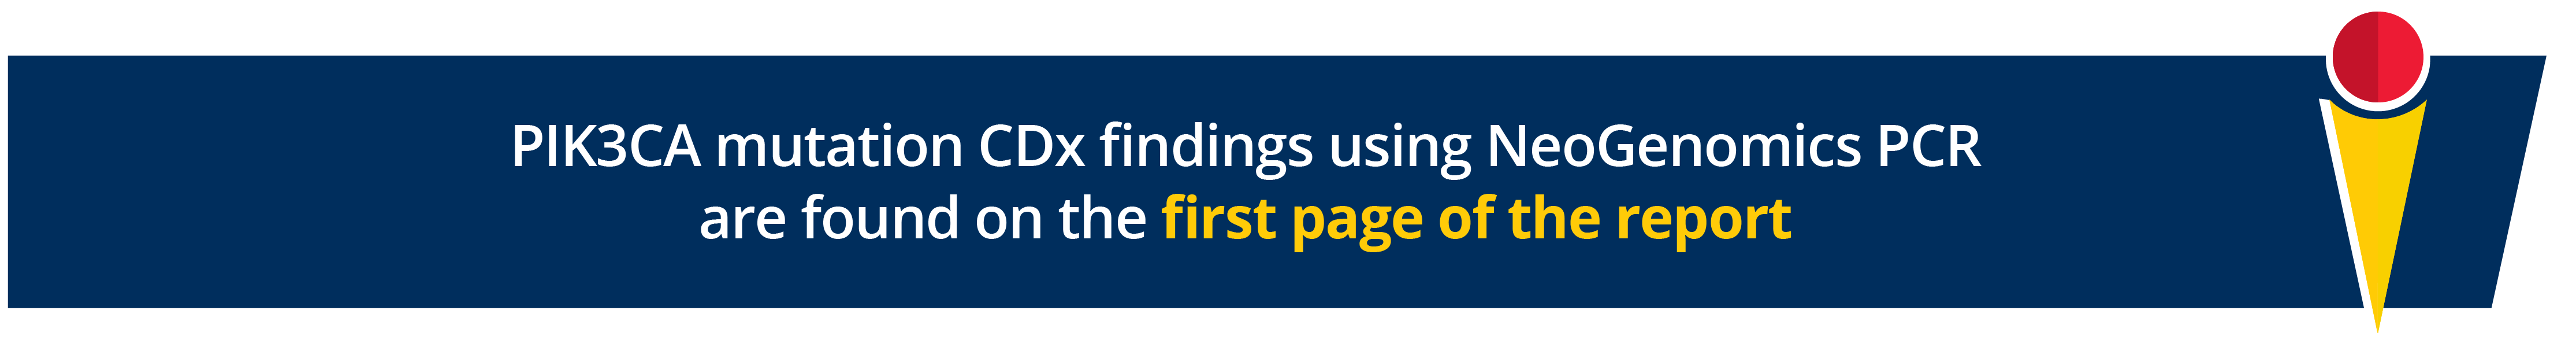 PIK3CA mutation CDx Findings using NeoGenomics PCR are found on the first page of your report